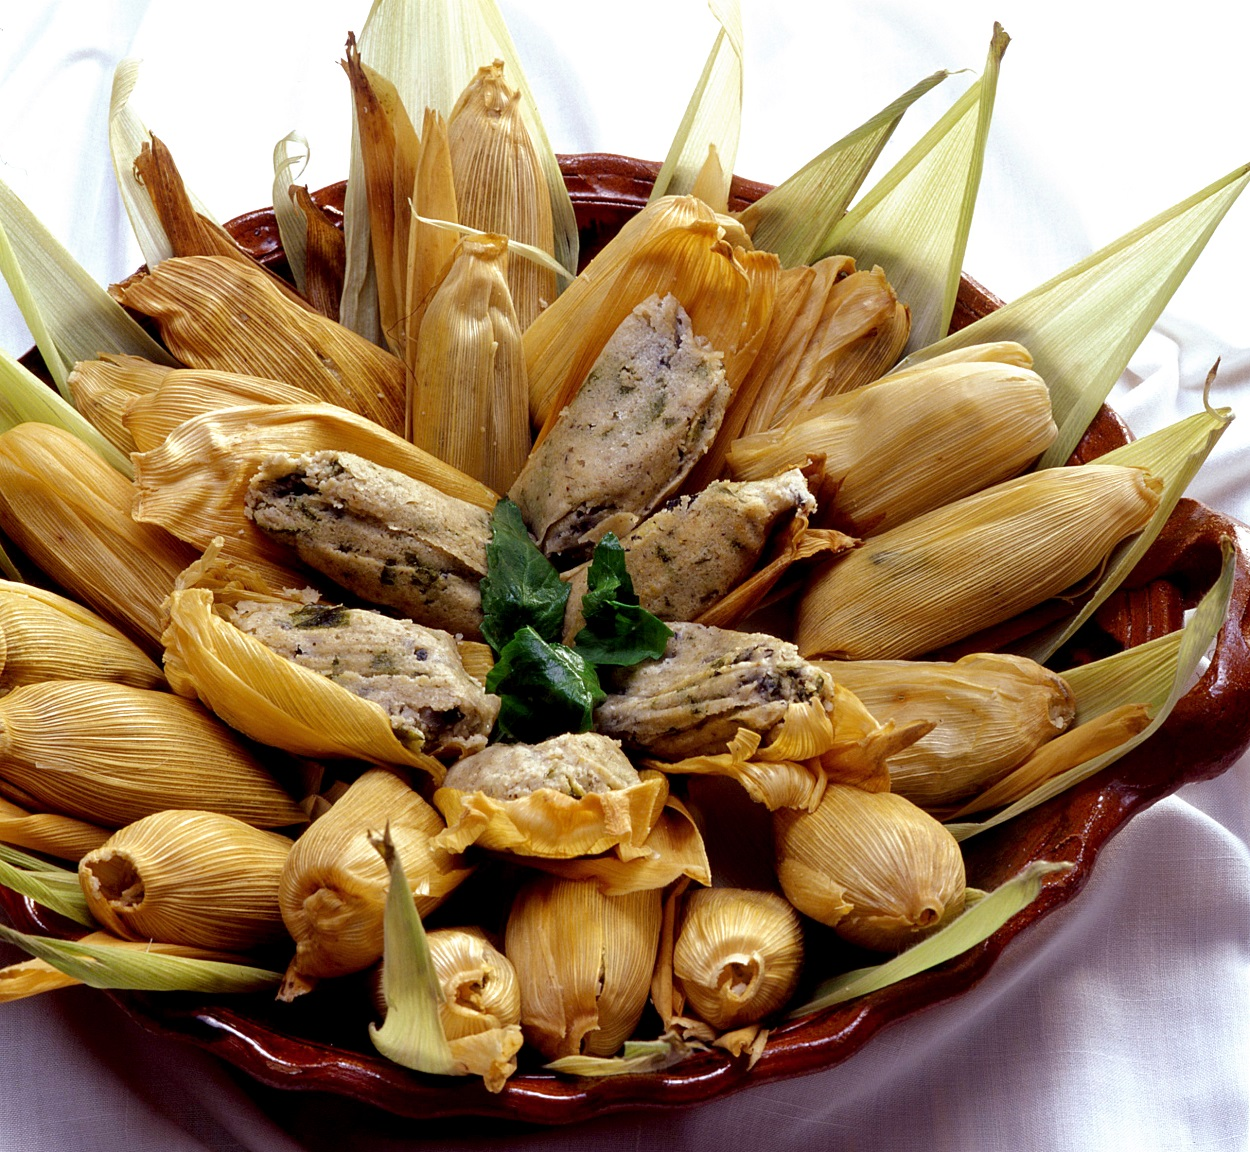 What are tamales?